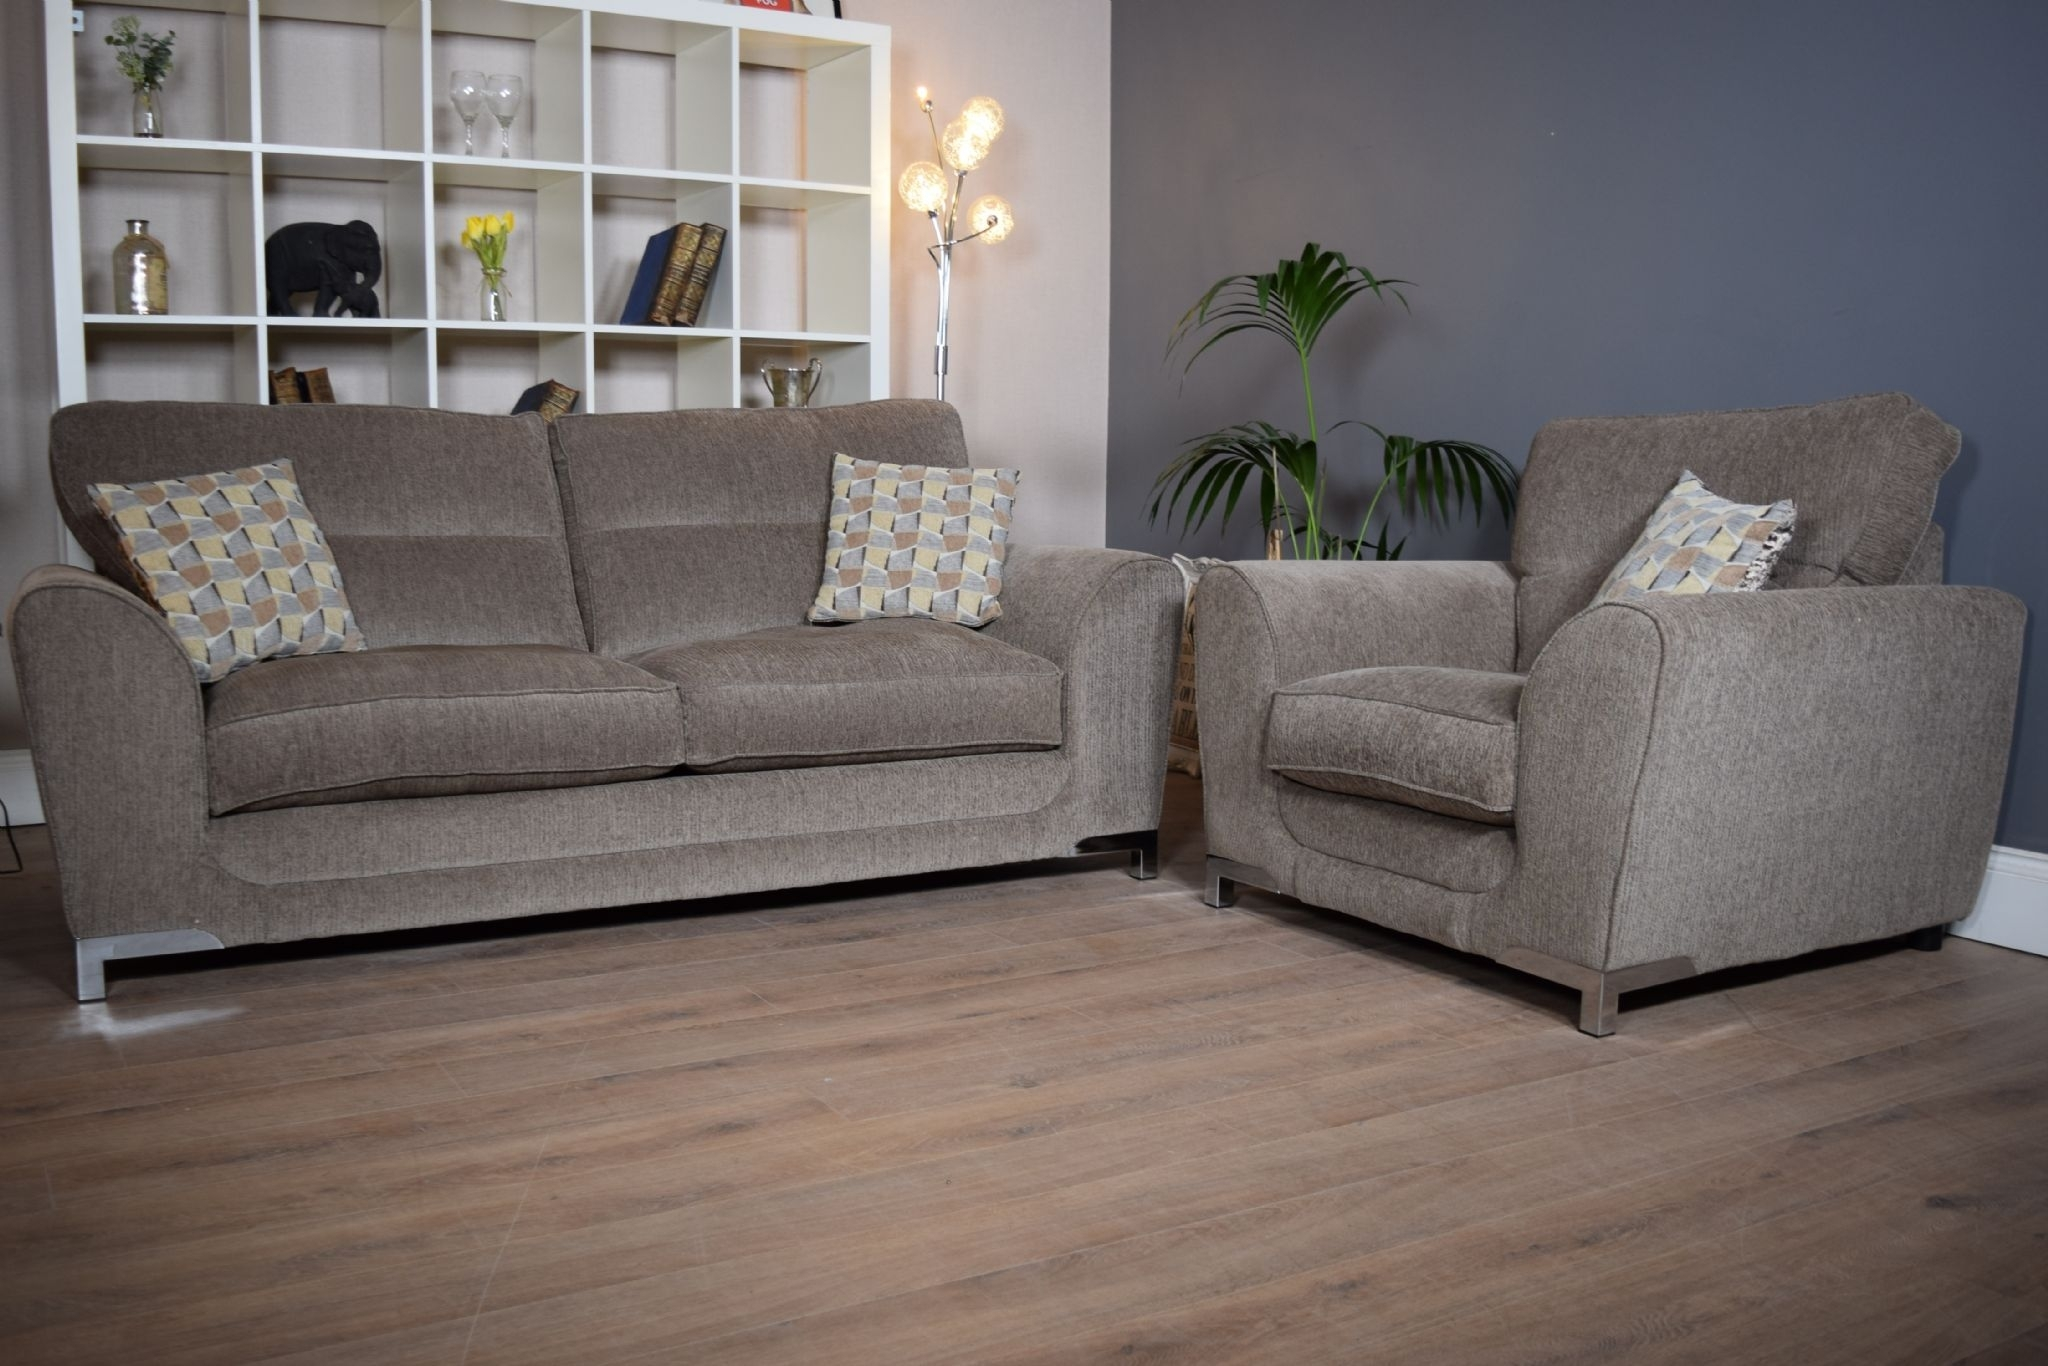 Set Nikki 3 Seater Sofa & Cuddle Chair Suite Set – Mocha Grey – Out For 3 Seater Sofas And Cuddle Chairs (View 10 of 10)